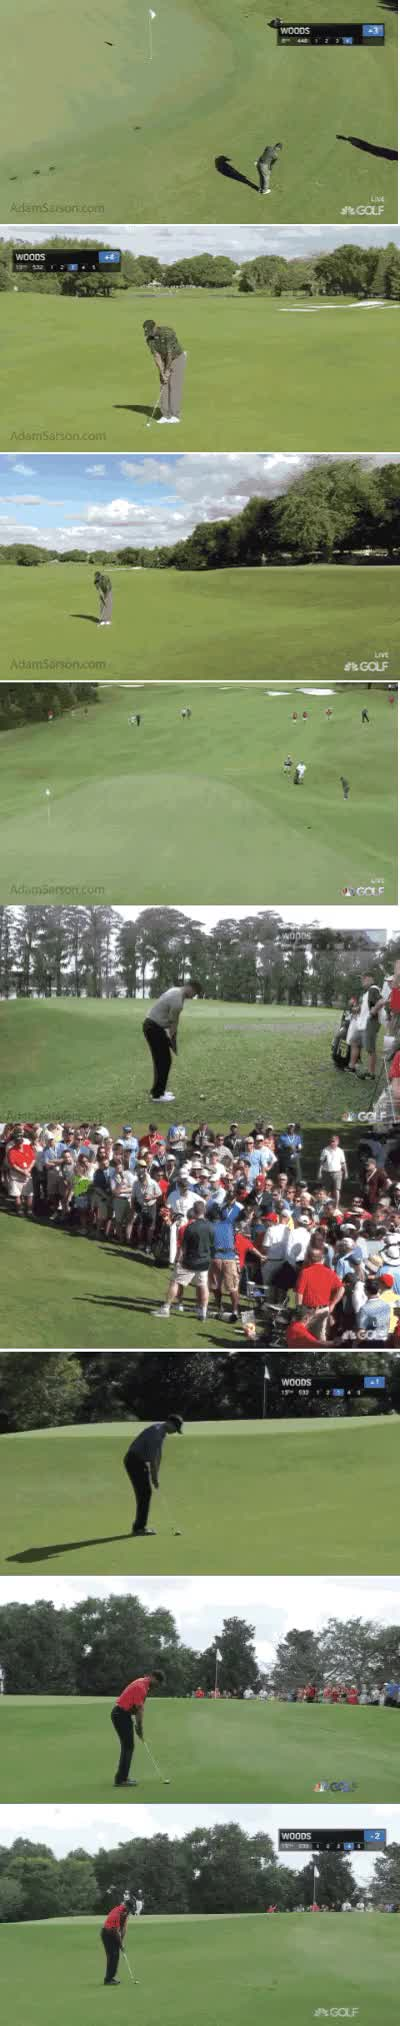 Watch and share Tiger Chunk GIFs on Gfycat